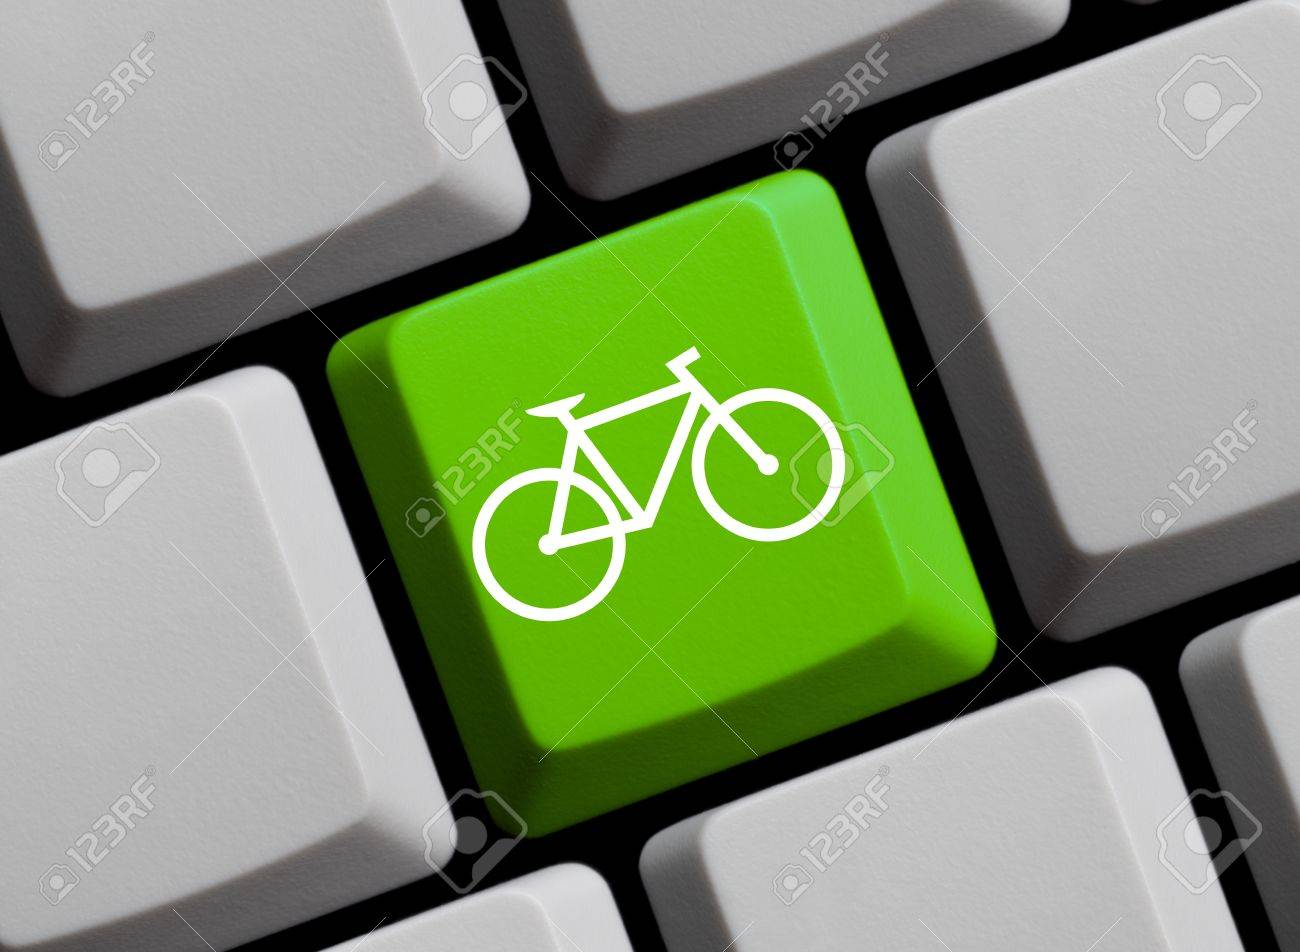 Bicycle Symbol On Keyboard Stock Photo Picture And Royalty Free